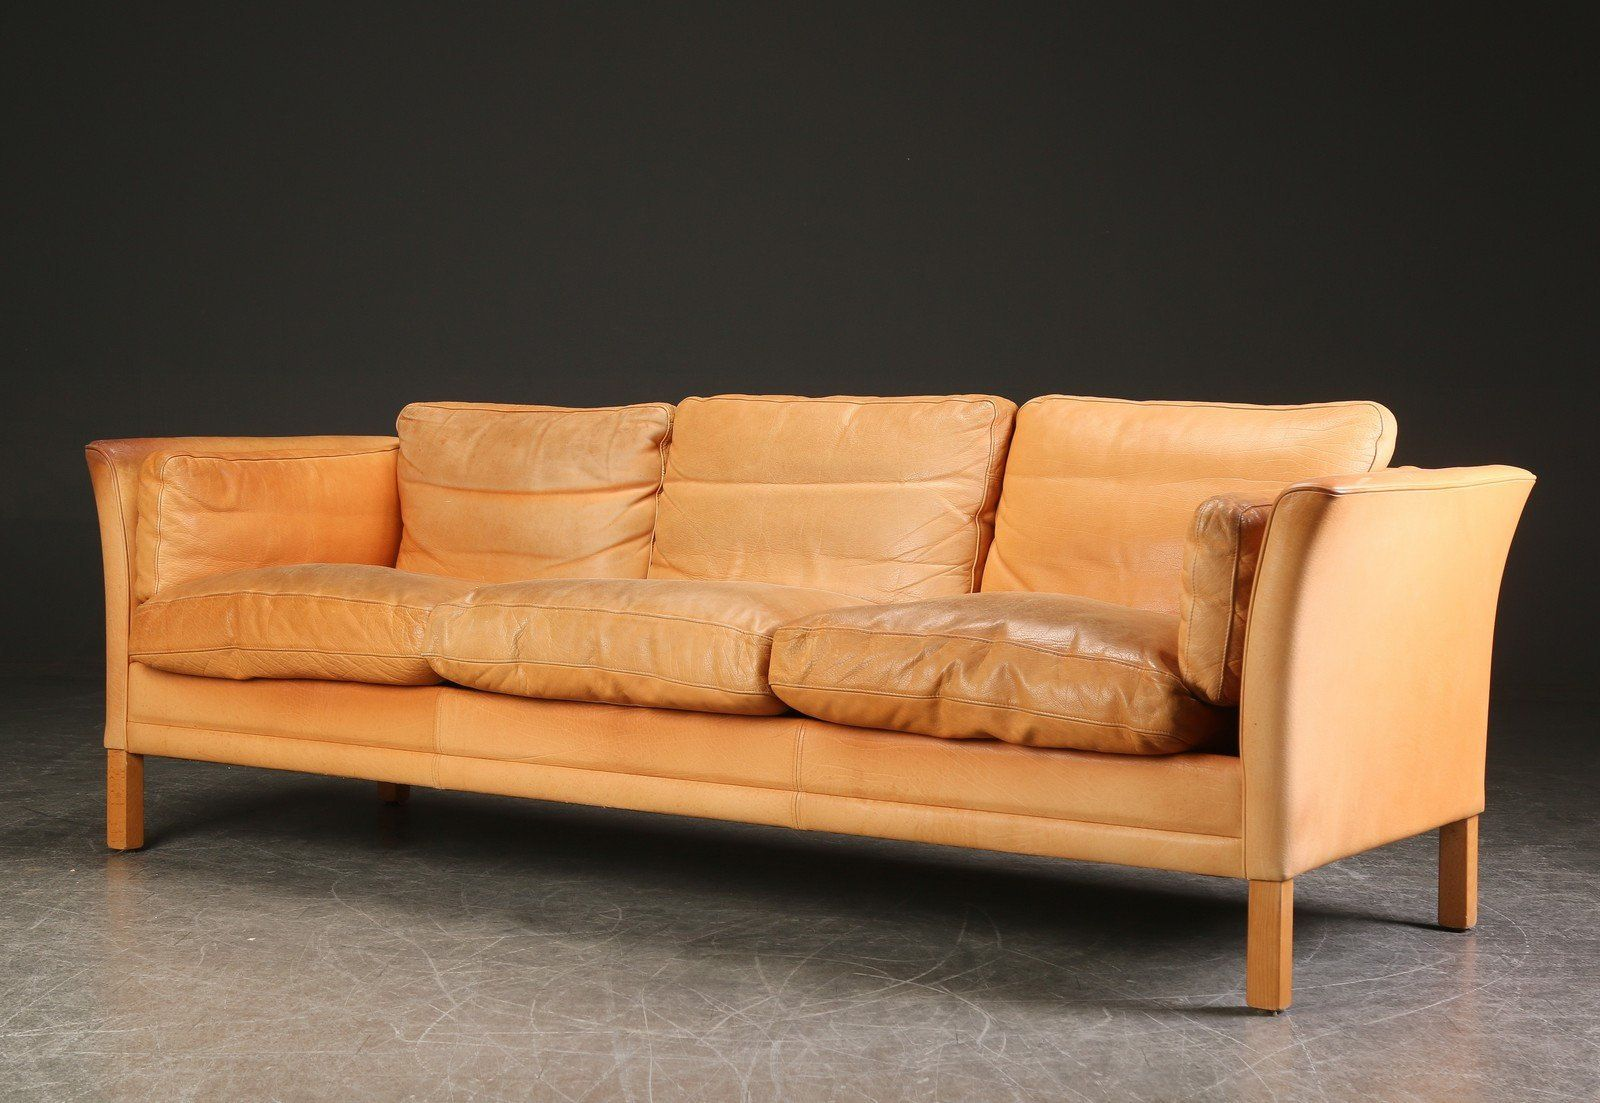 Your Place To Buy And Sell All Things Handmade Danish Vintage Furniture Vintage Leather Sofa Leather Sofa